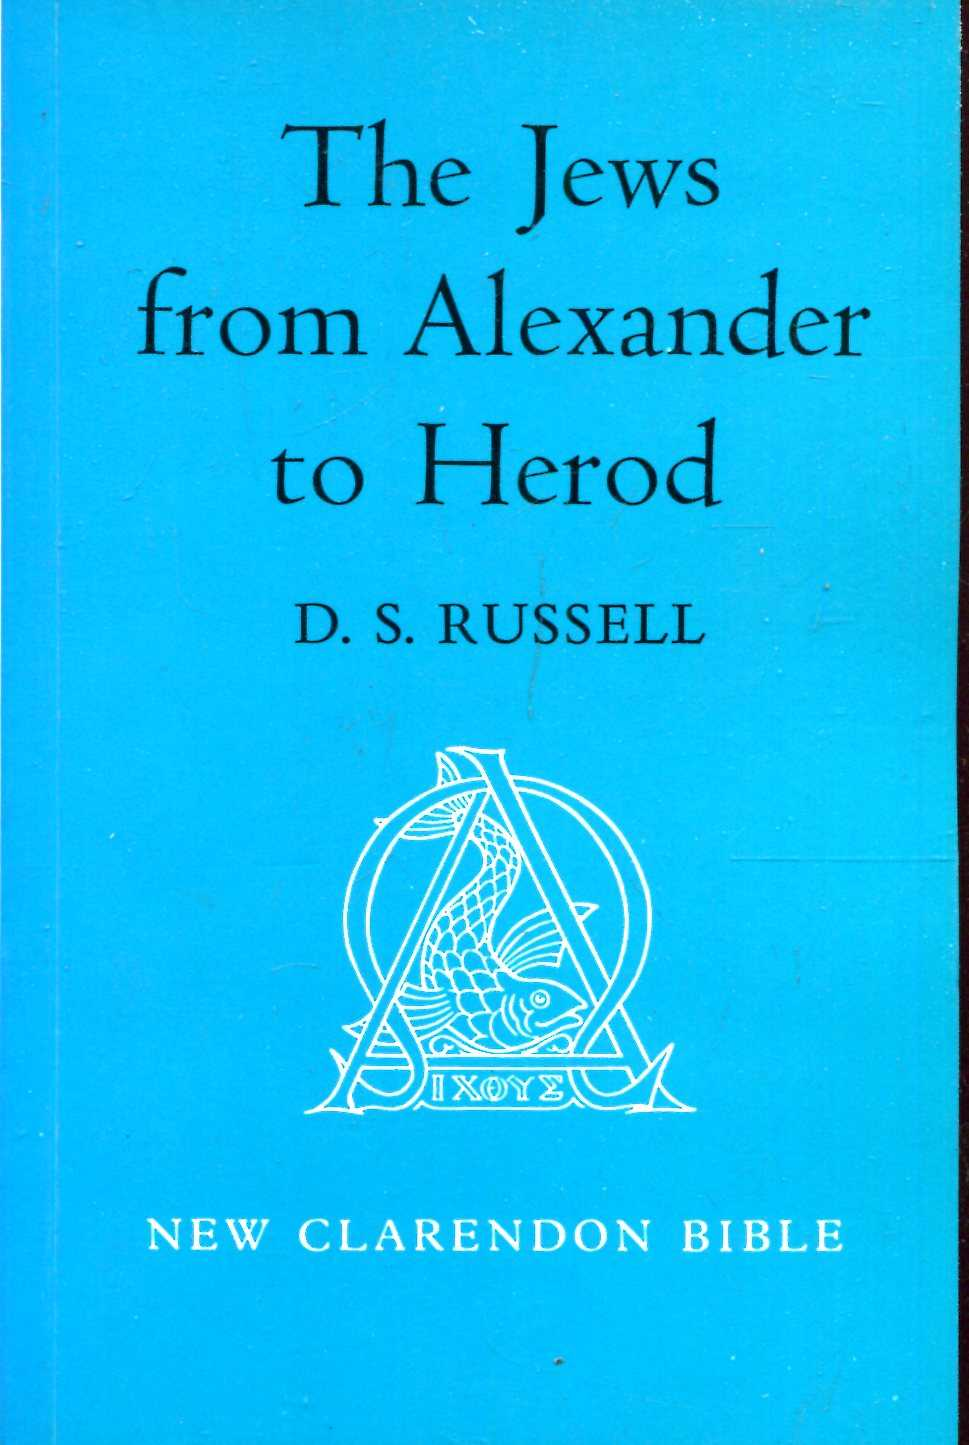 Image for The Jews from Alexander to Herod